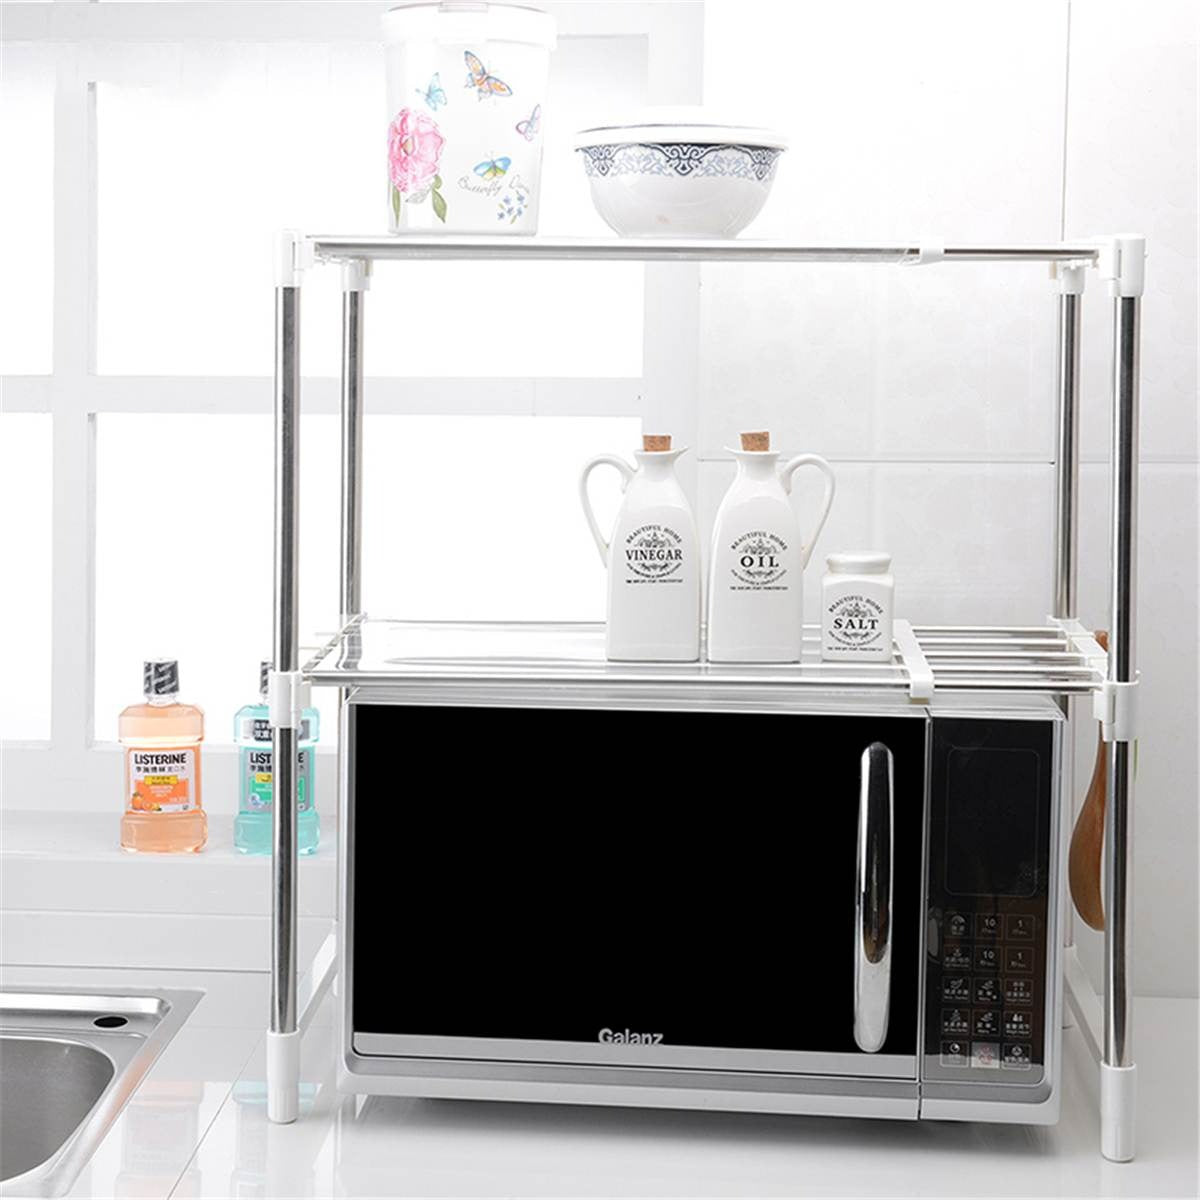 Stainless Steel Oven Storage Rack (4859016806434)